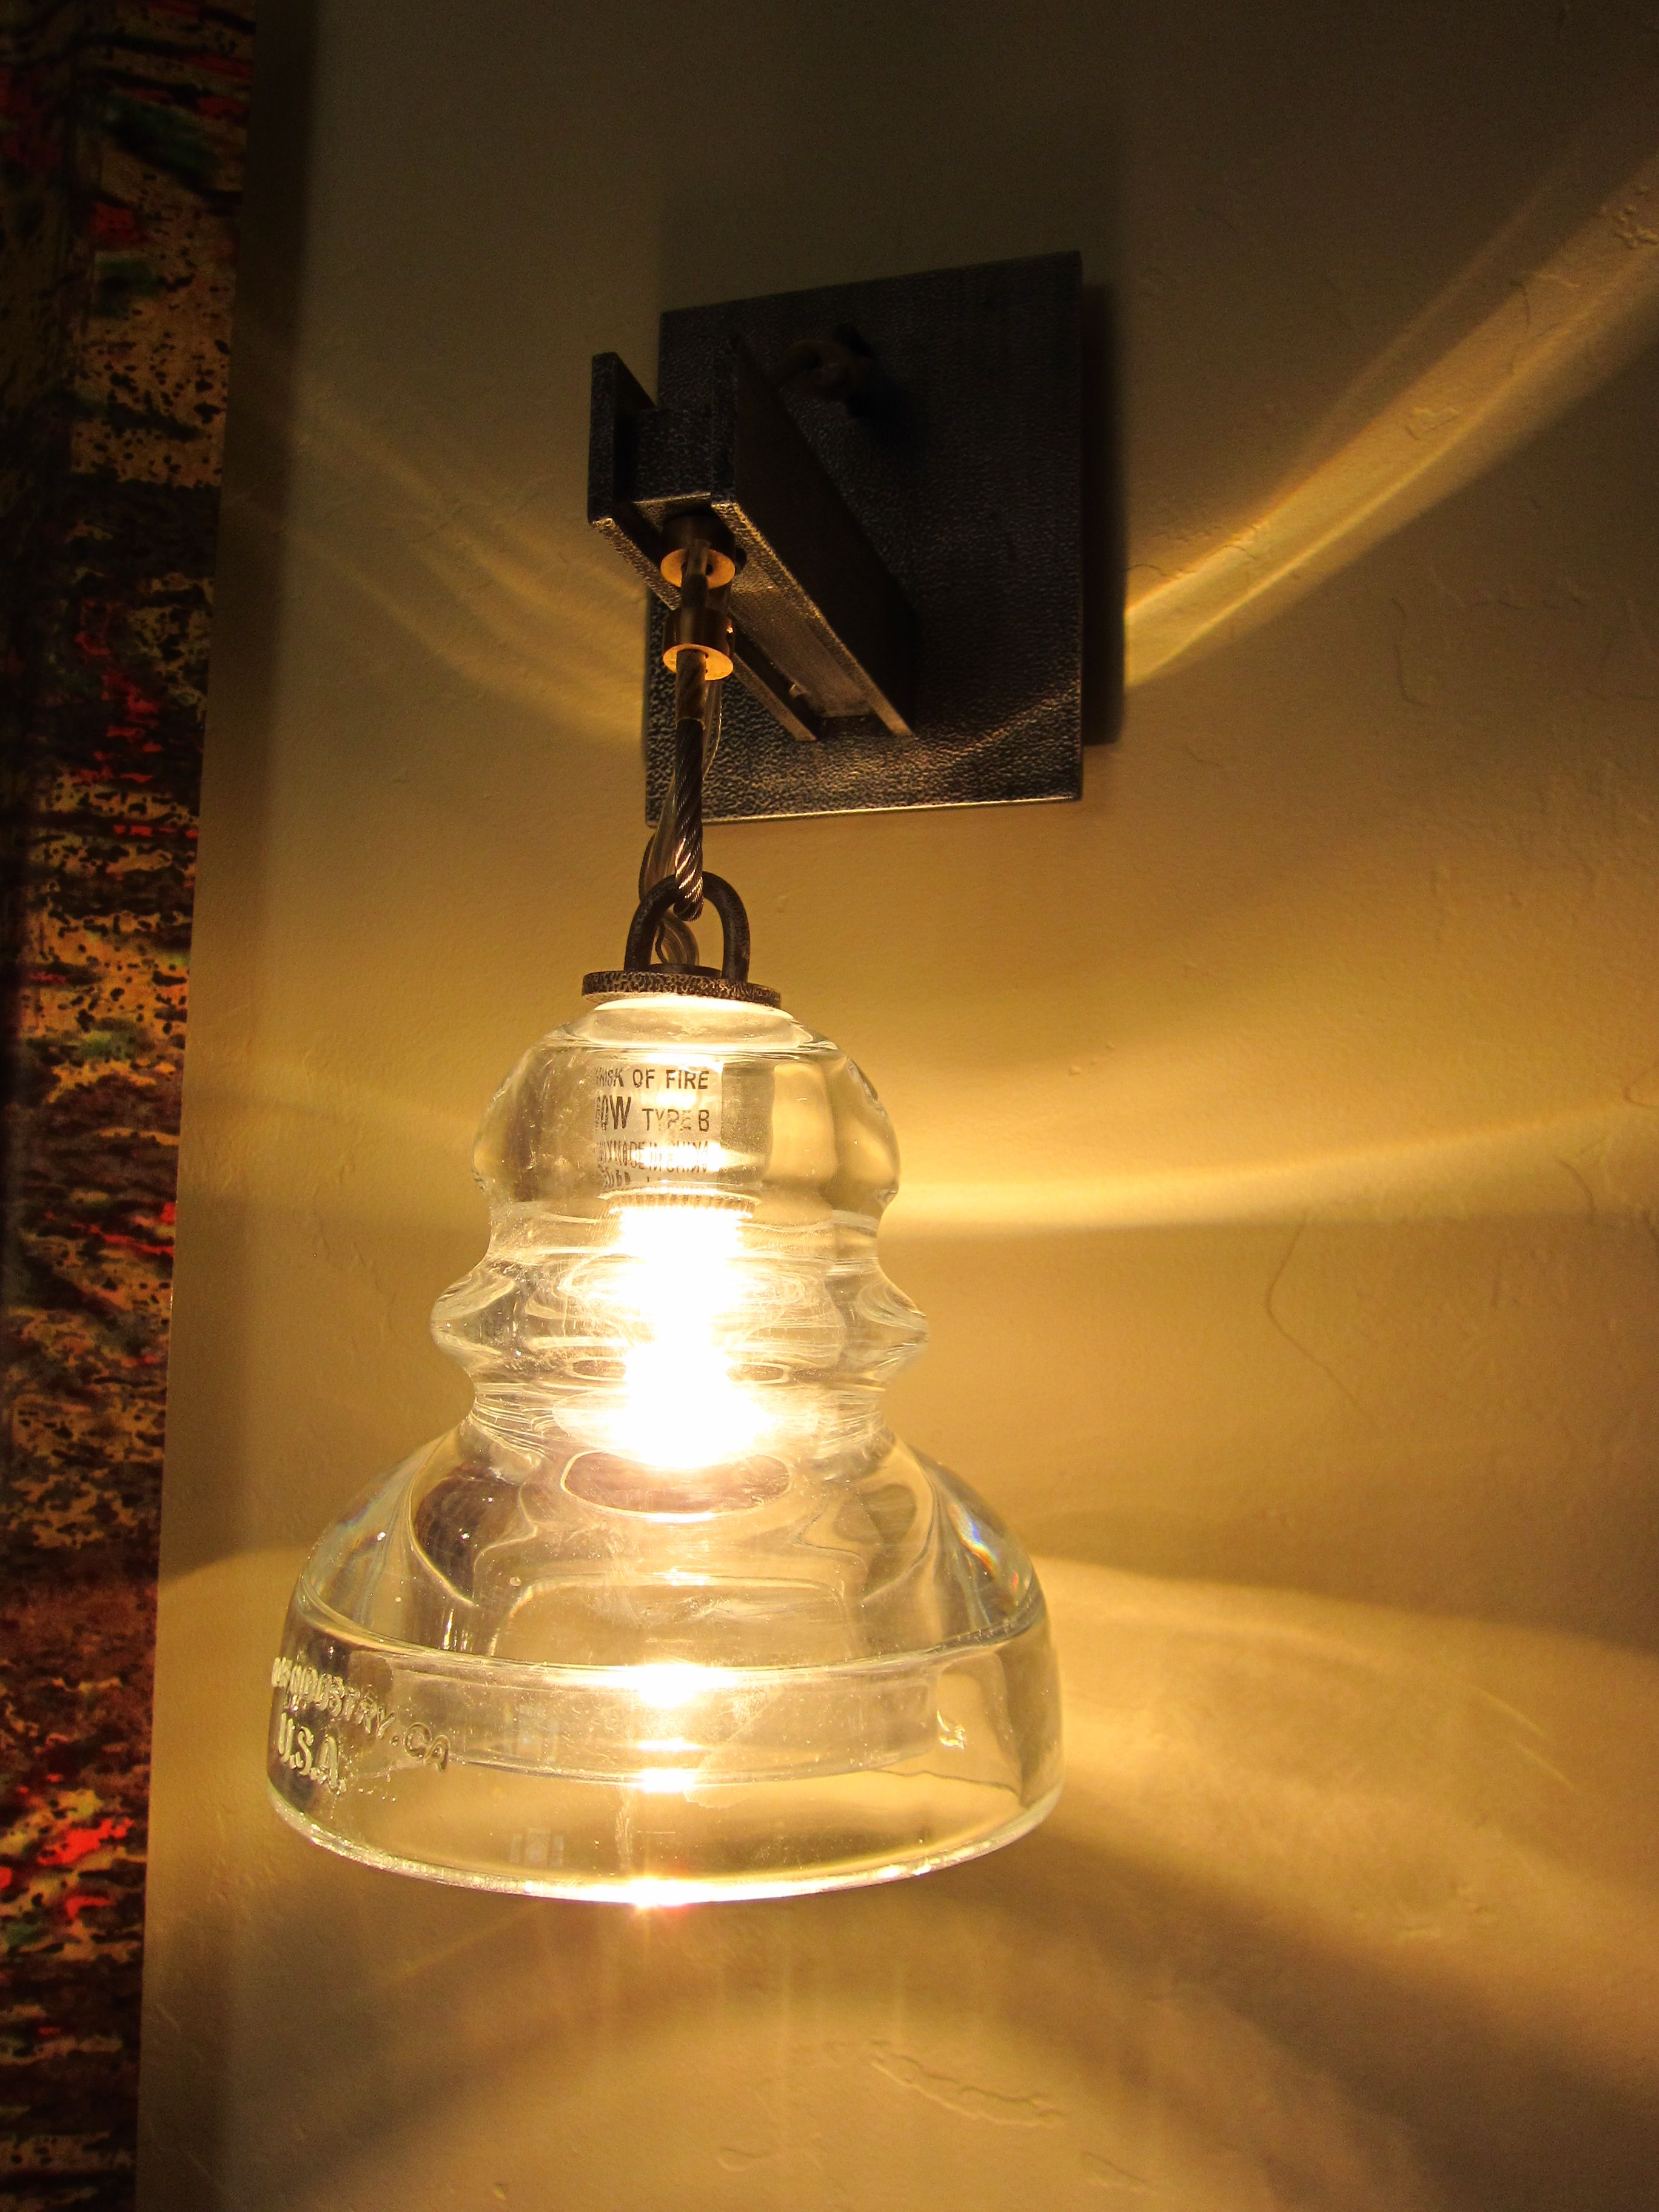 Now I know what to do with all those old insulators my dad collected  Dave's  Insulator